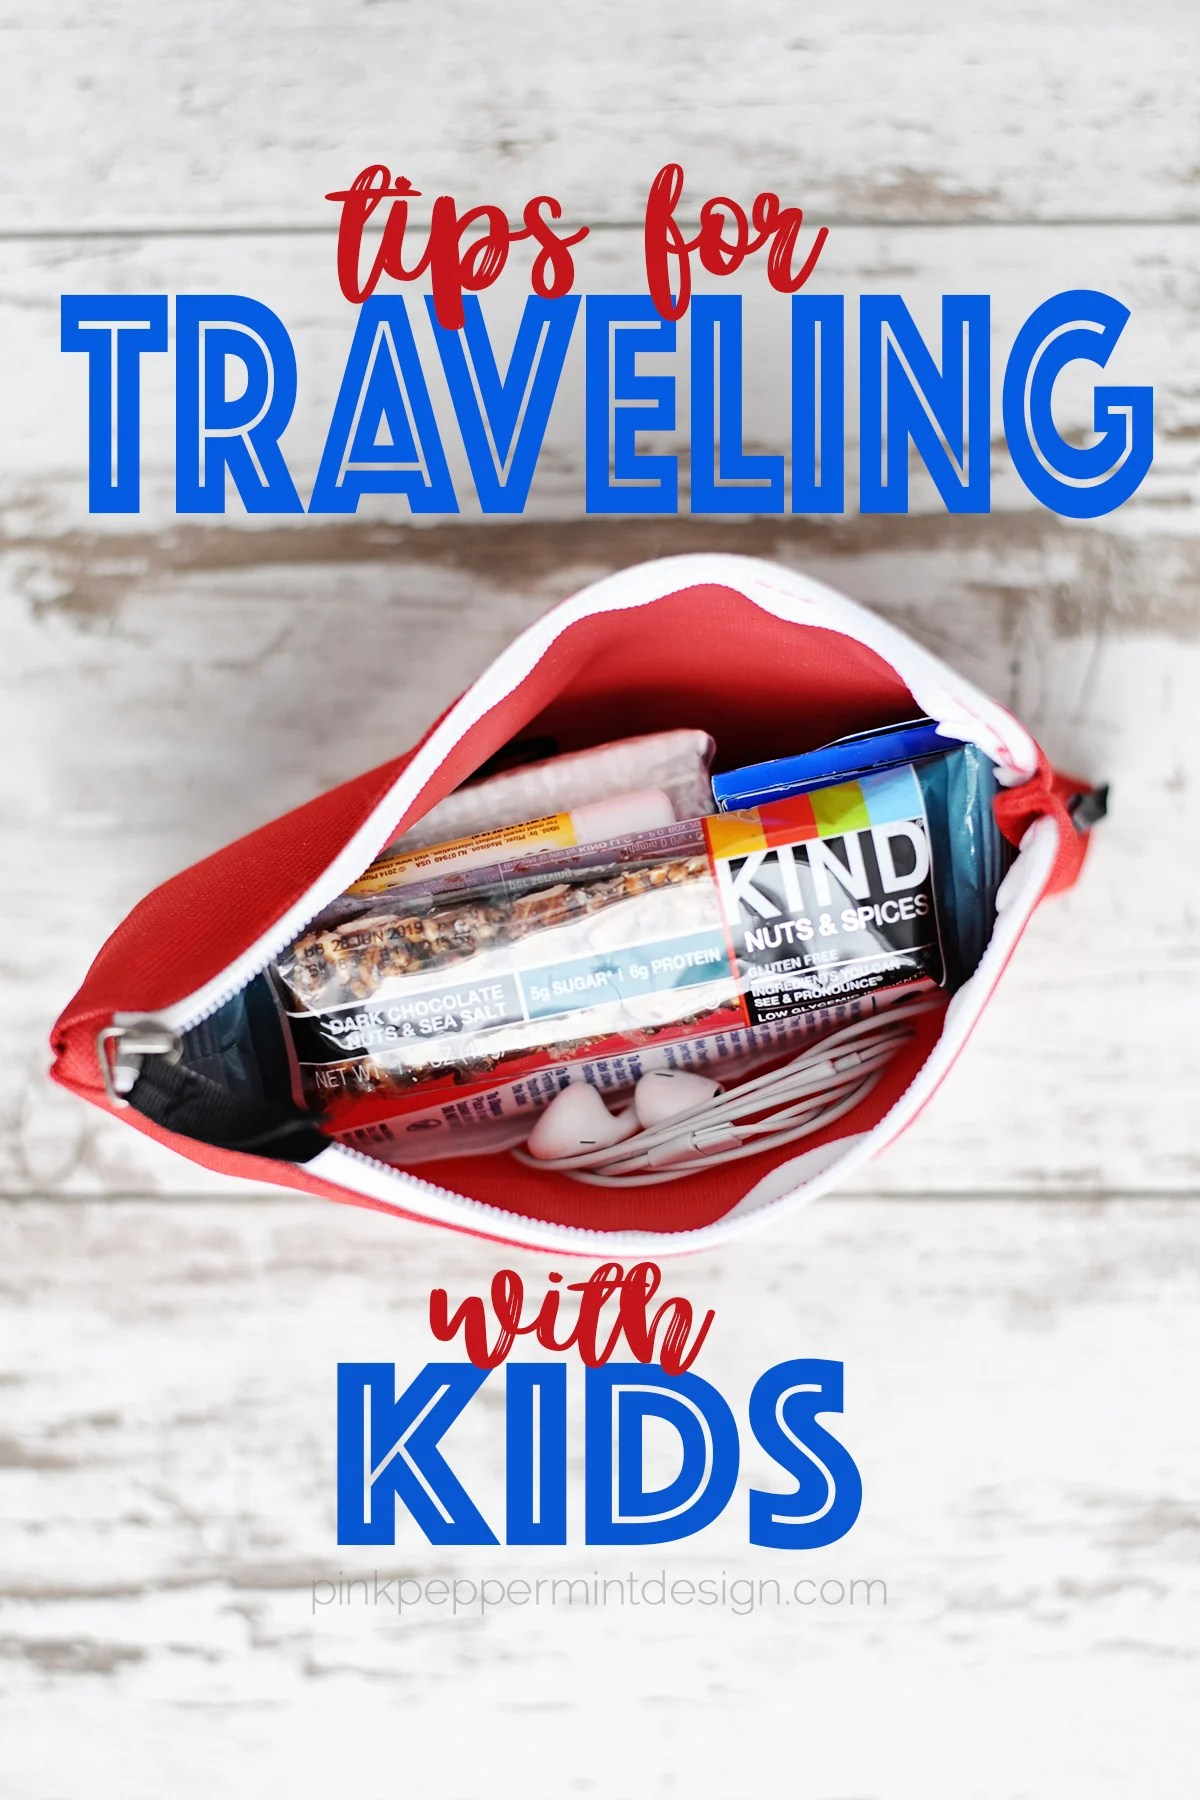 Organizing Tips for Traveling with Kids